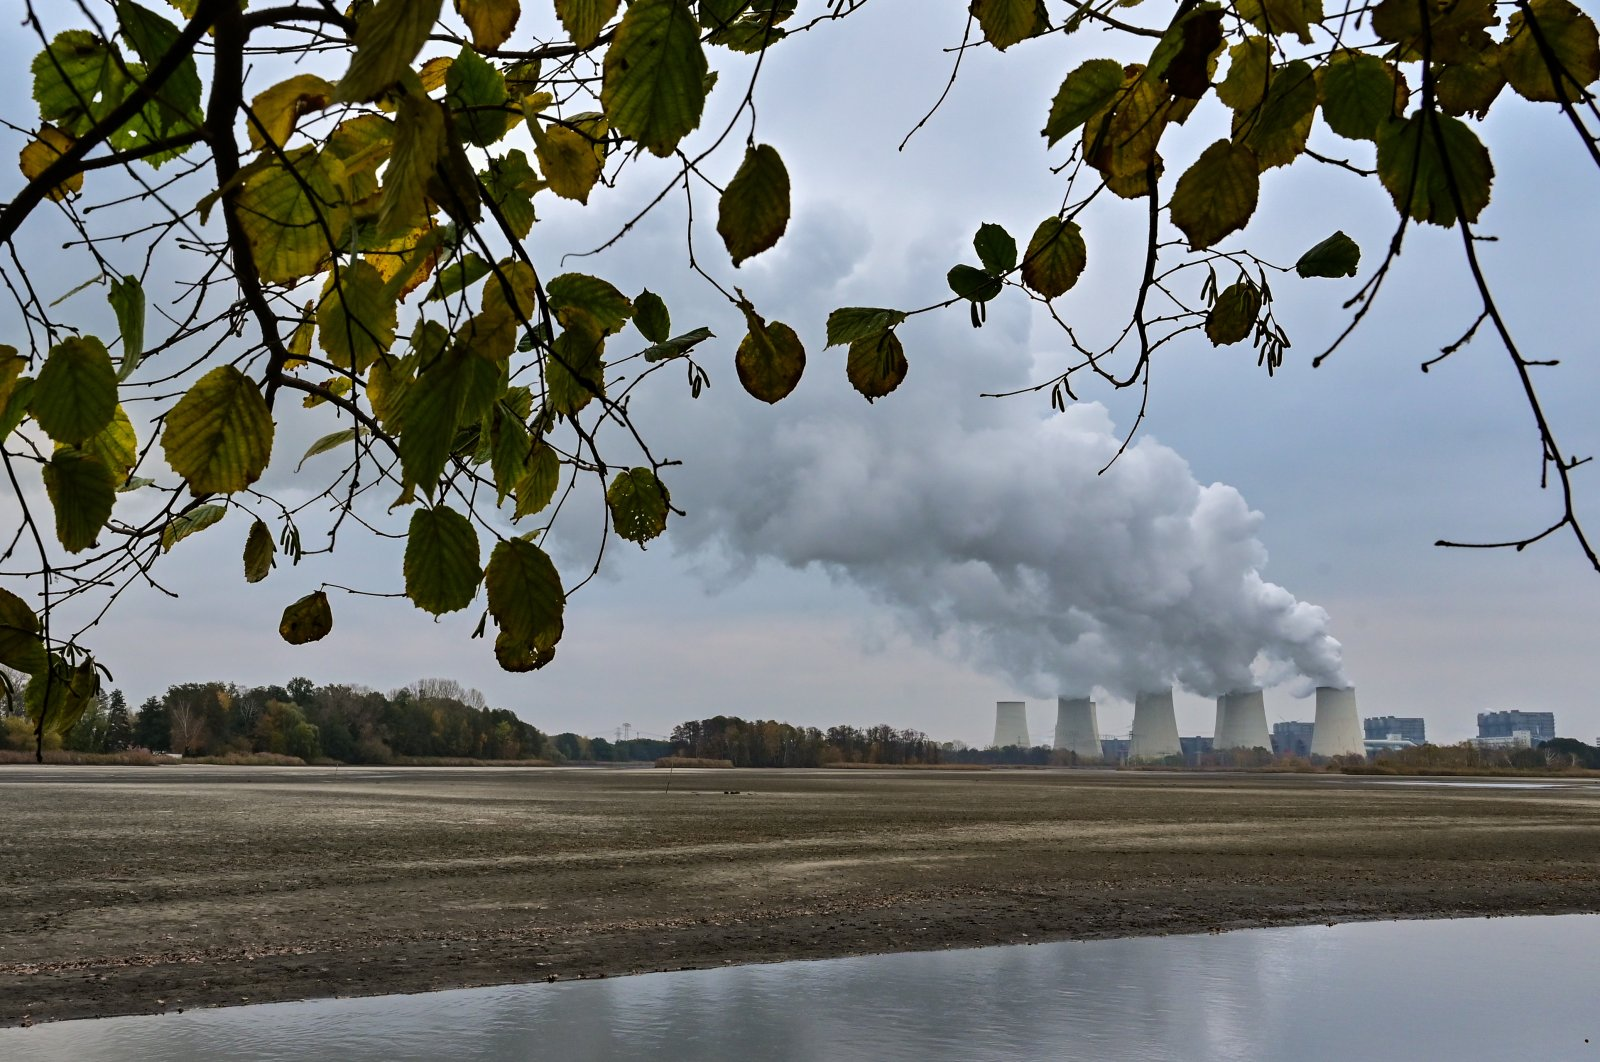 Behind a drained carp pond, water vapour from the cooling towers of the Jänschwalde lignite-fired power plant of Lausitz Energie Bergbau AG (LEAG) rises into the cloudy autumn sky. (Getty Images)